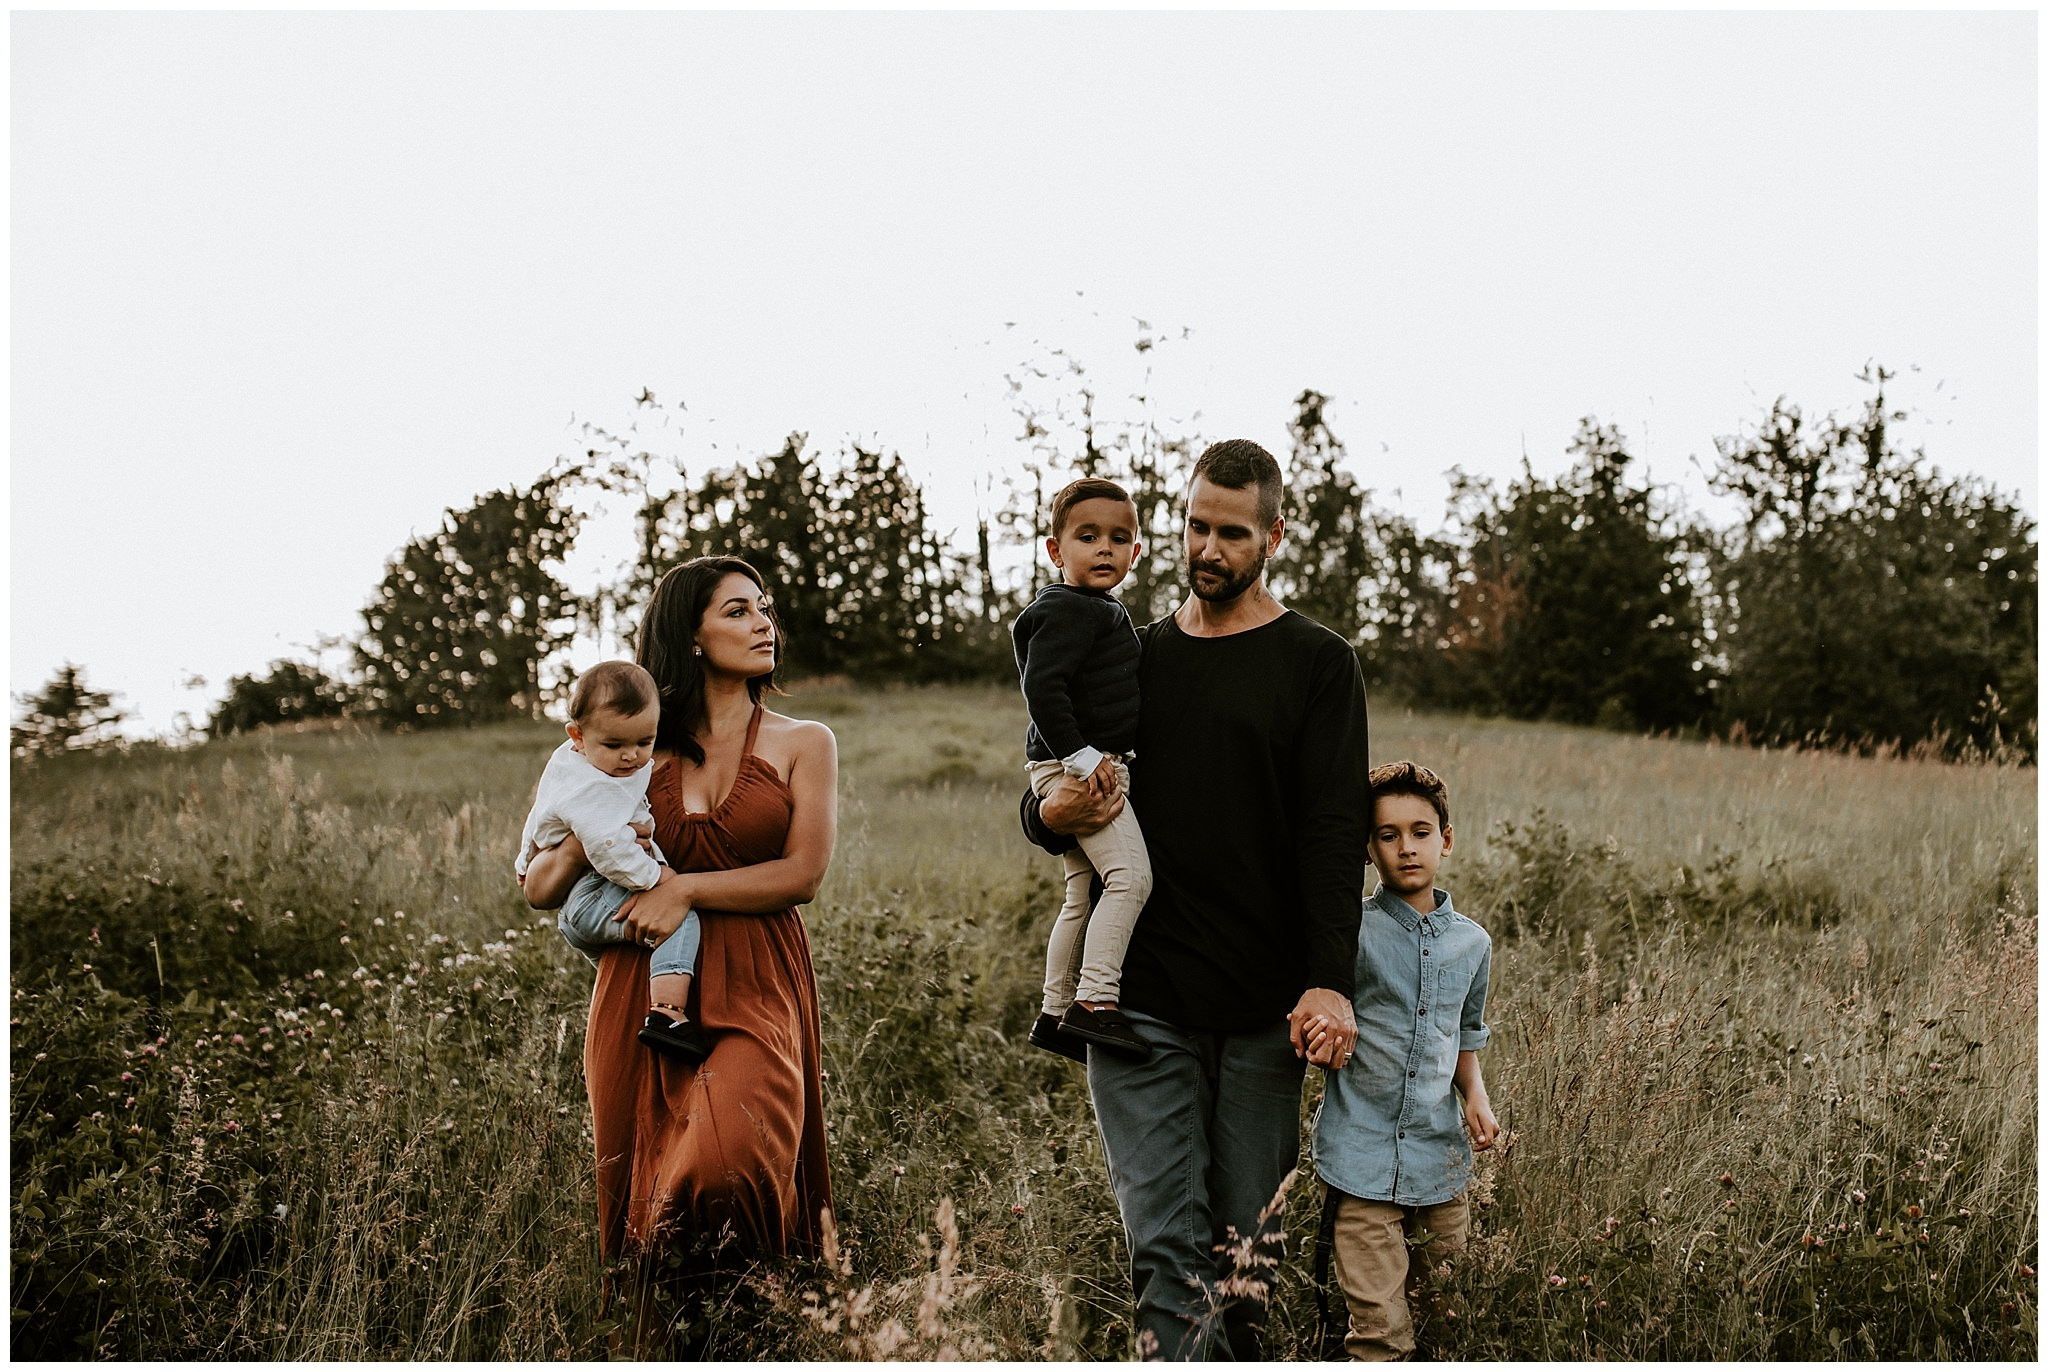 Vancouver family photos in golden light and tall grassy field